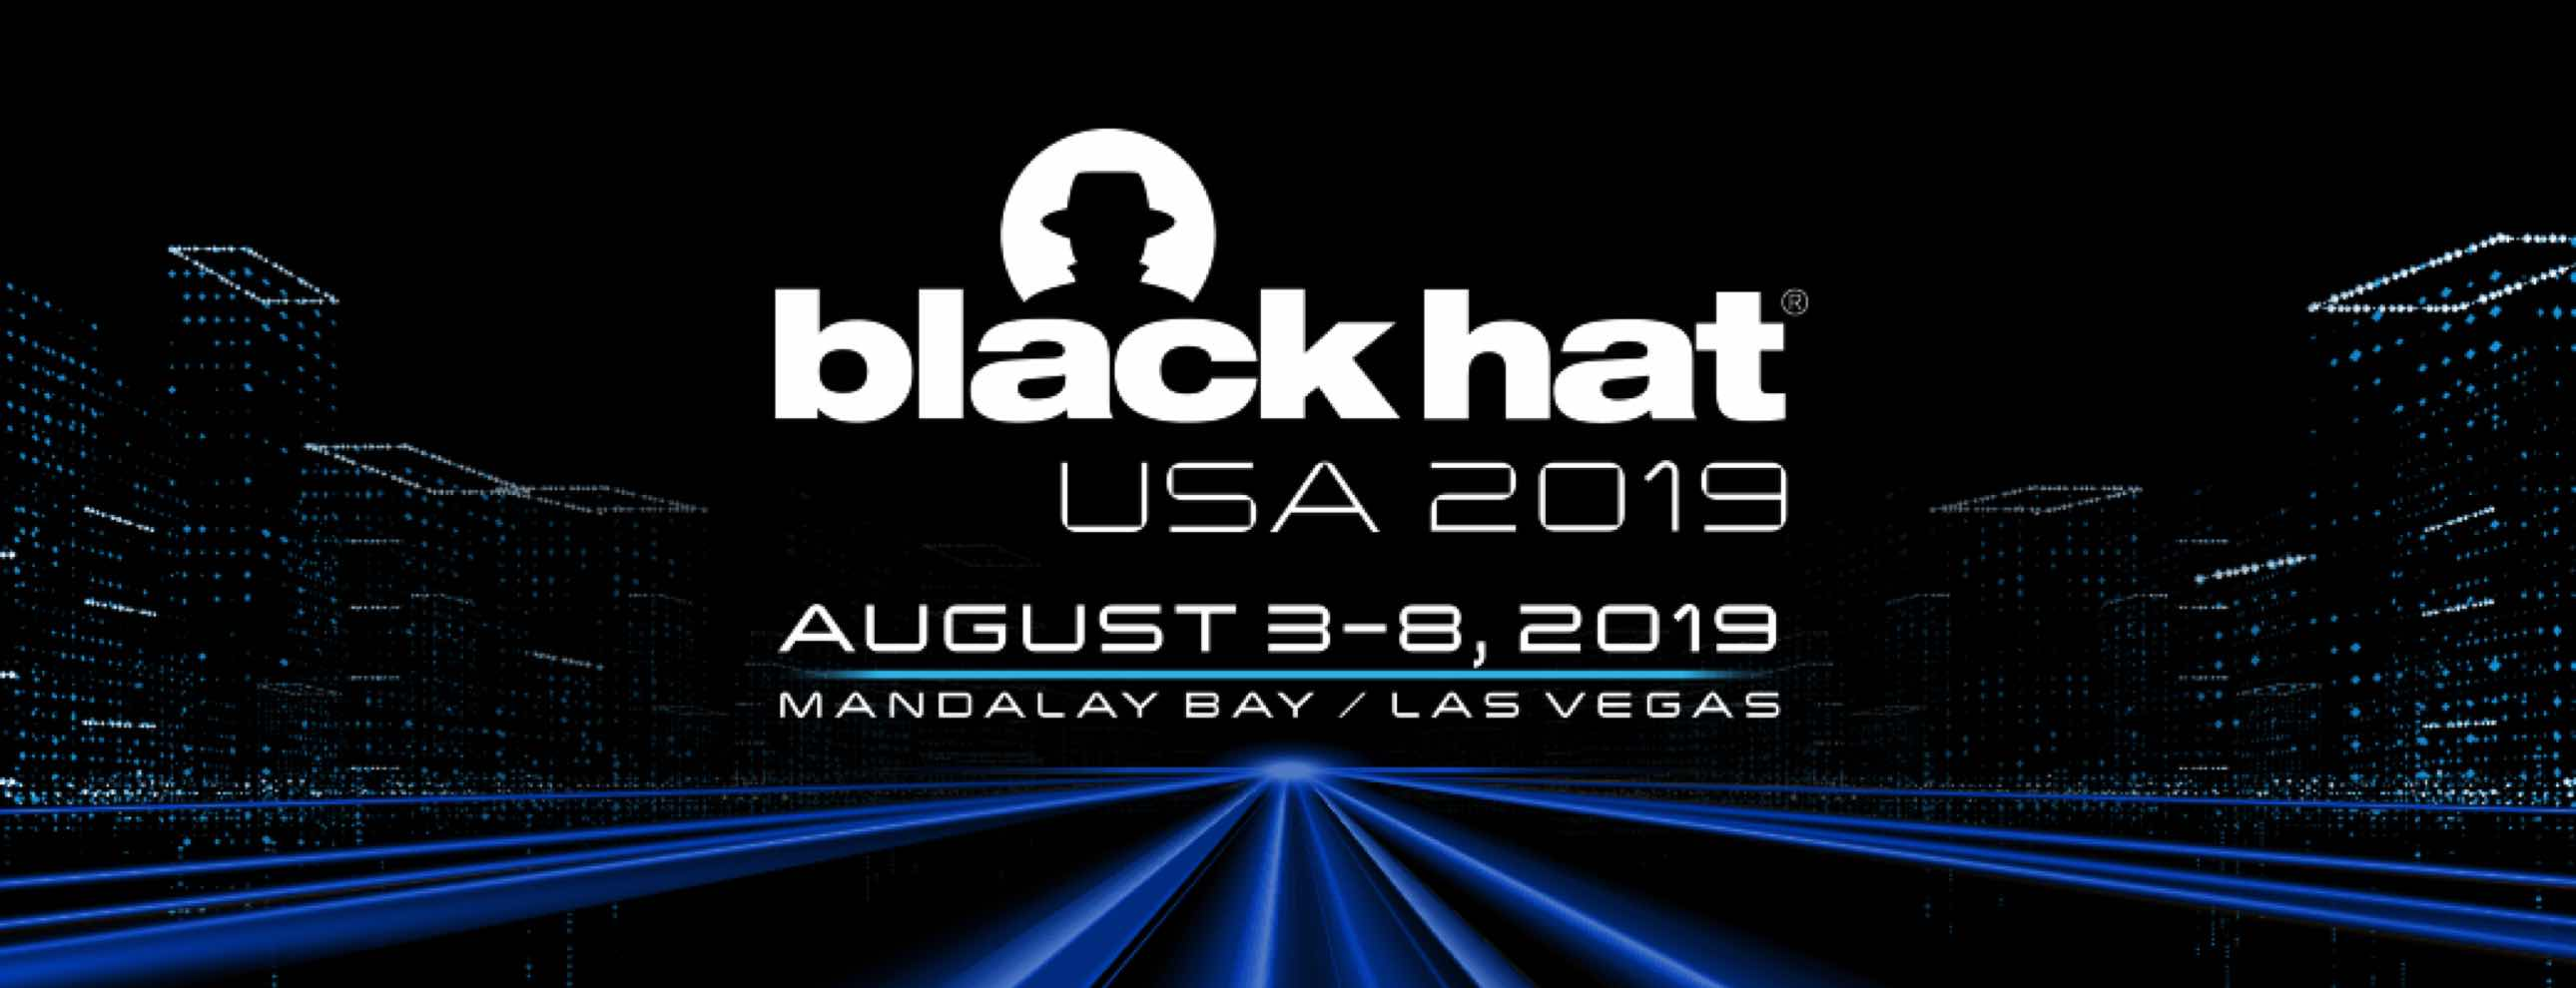 Qualys at Black Hat USA 2019